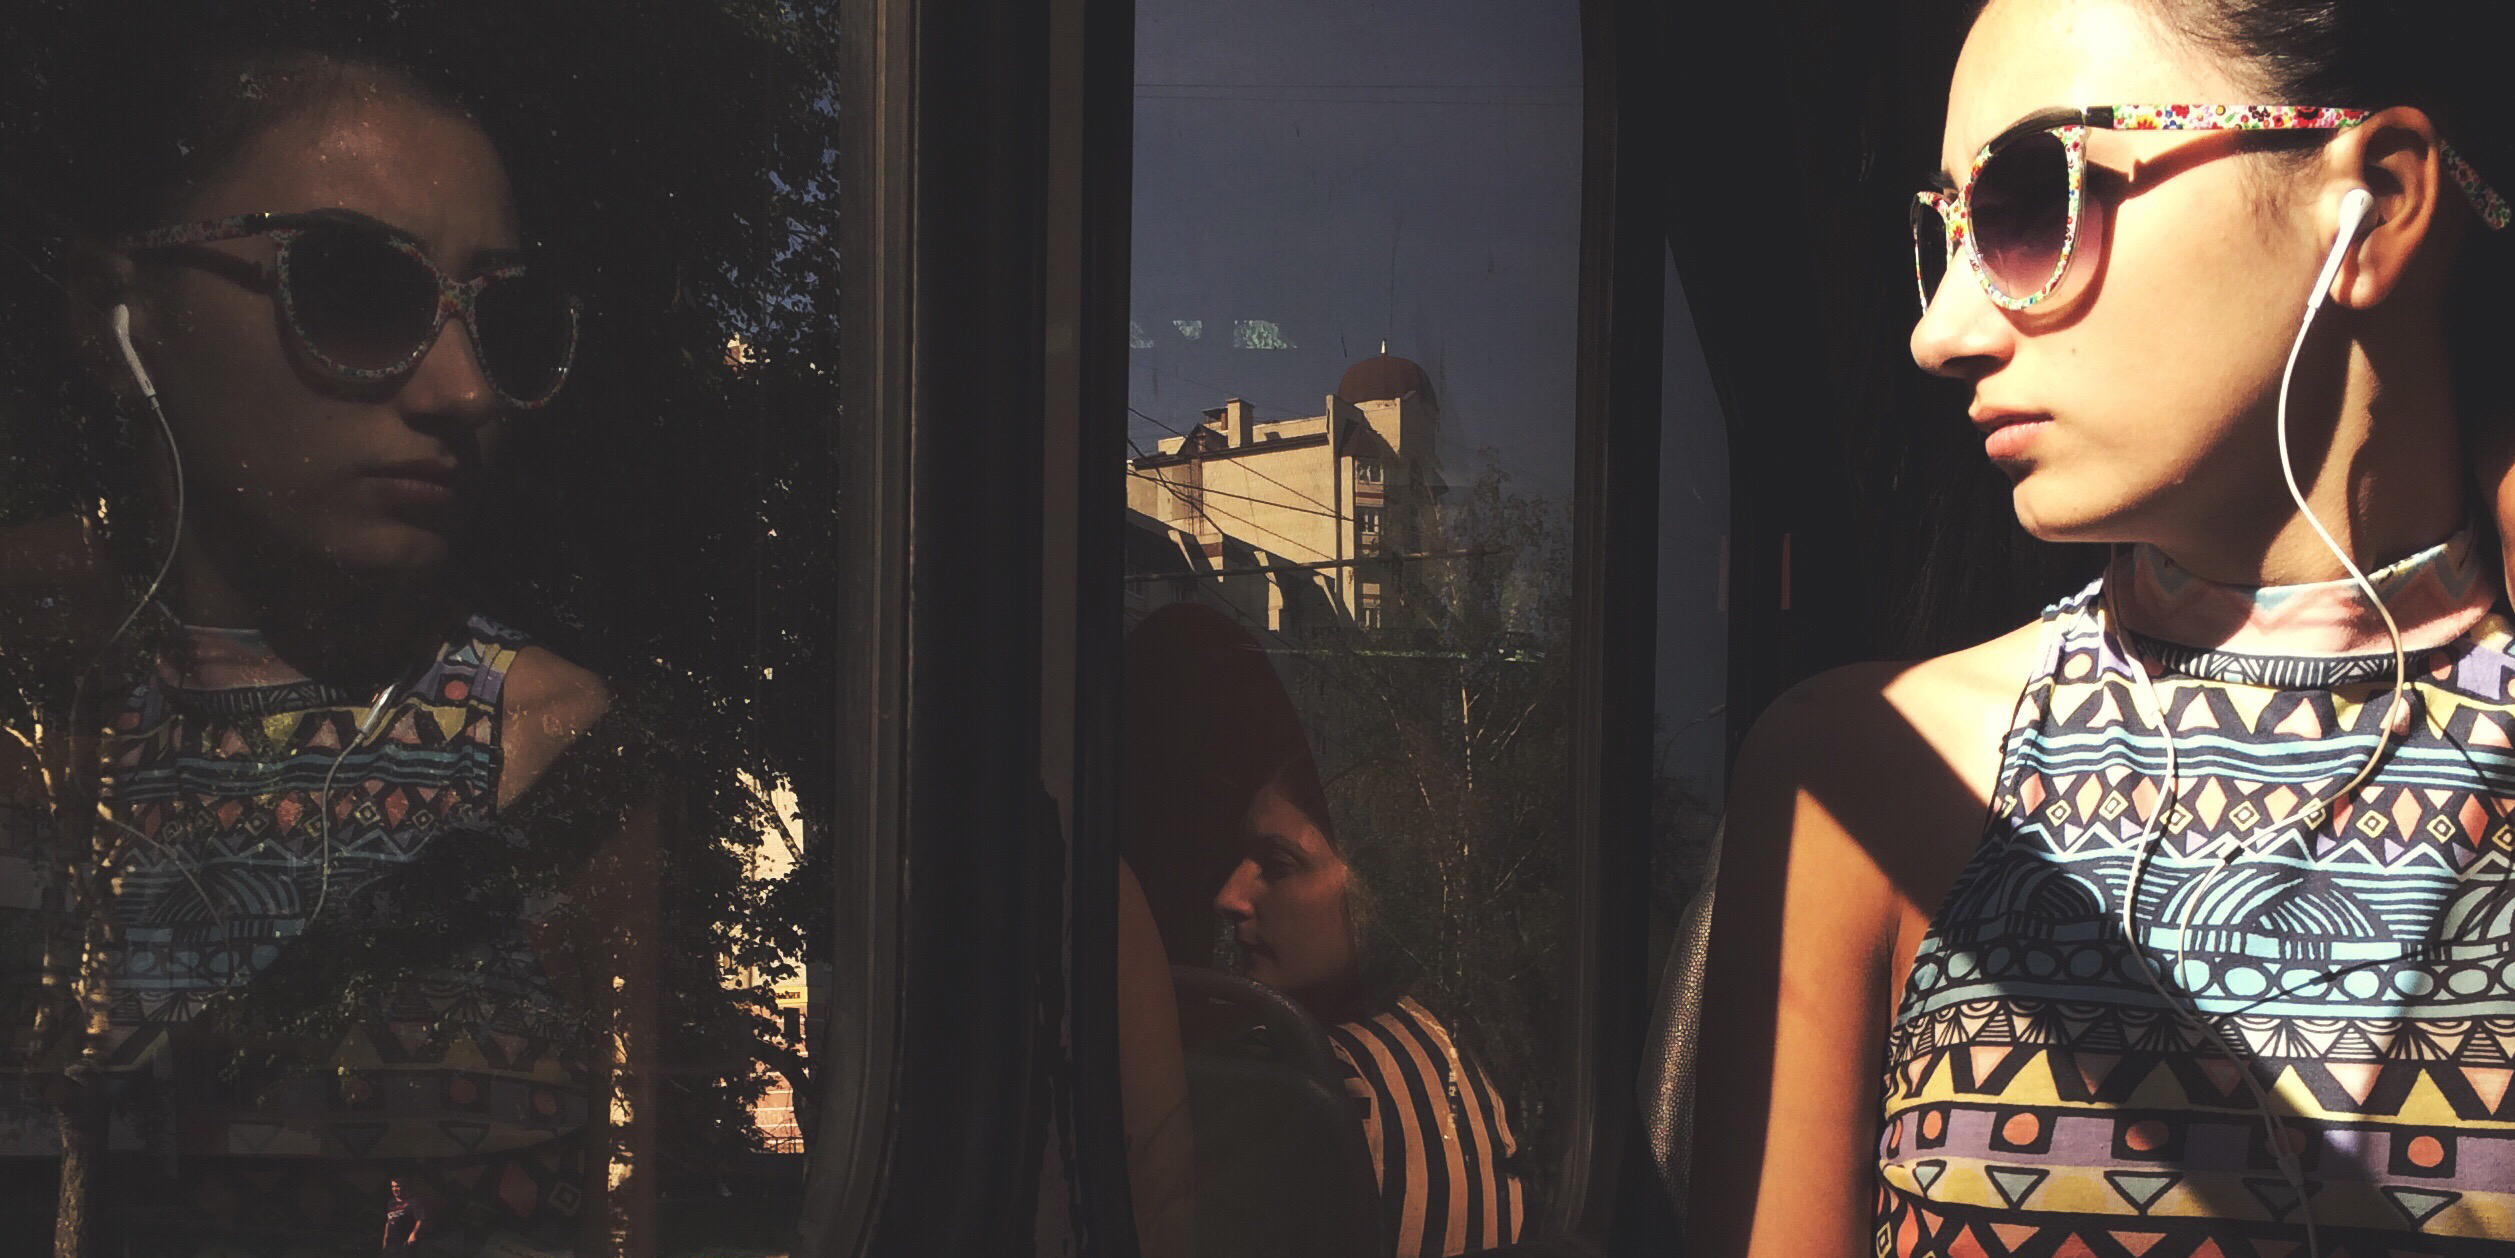 A woman with pale skin and dark hair sits looking out of a window on a train.